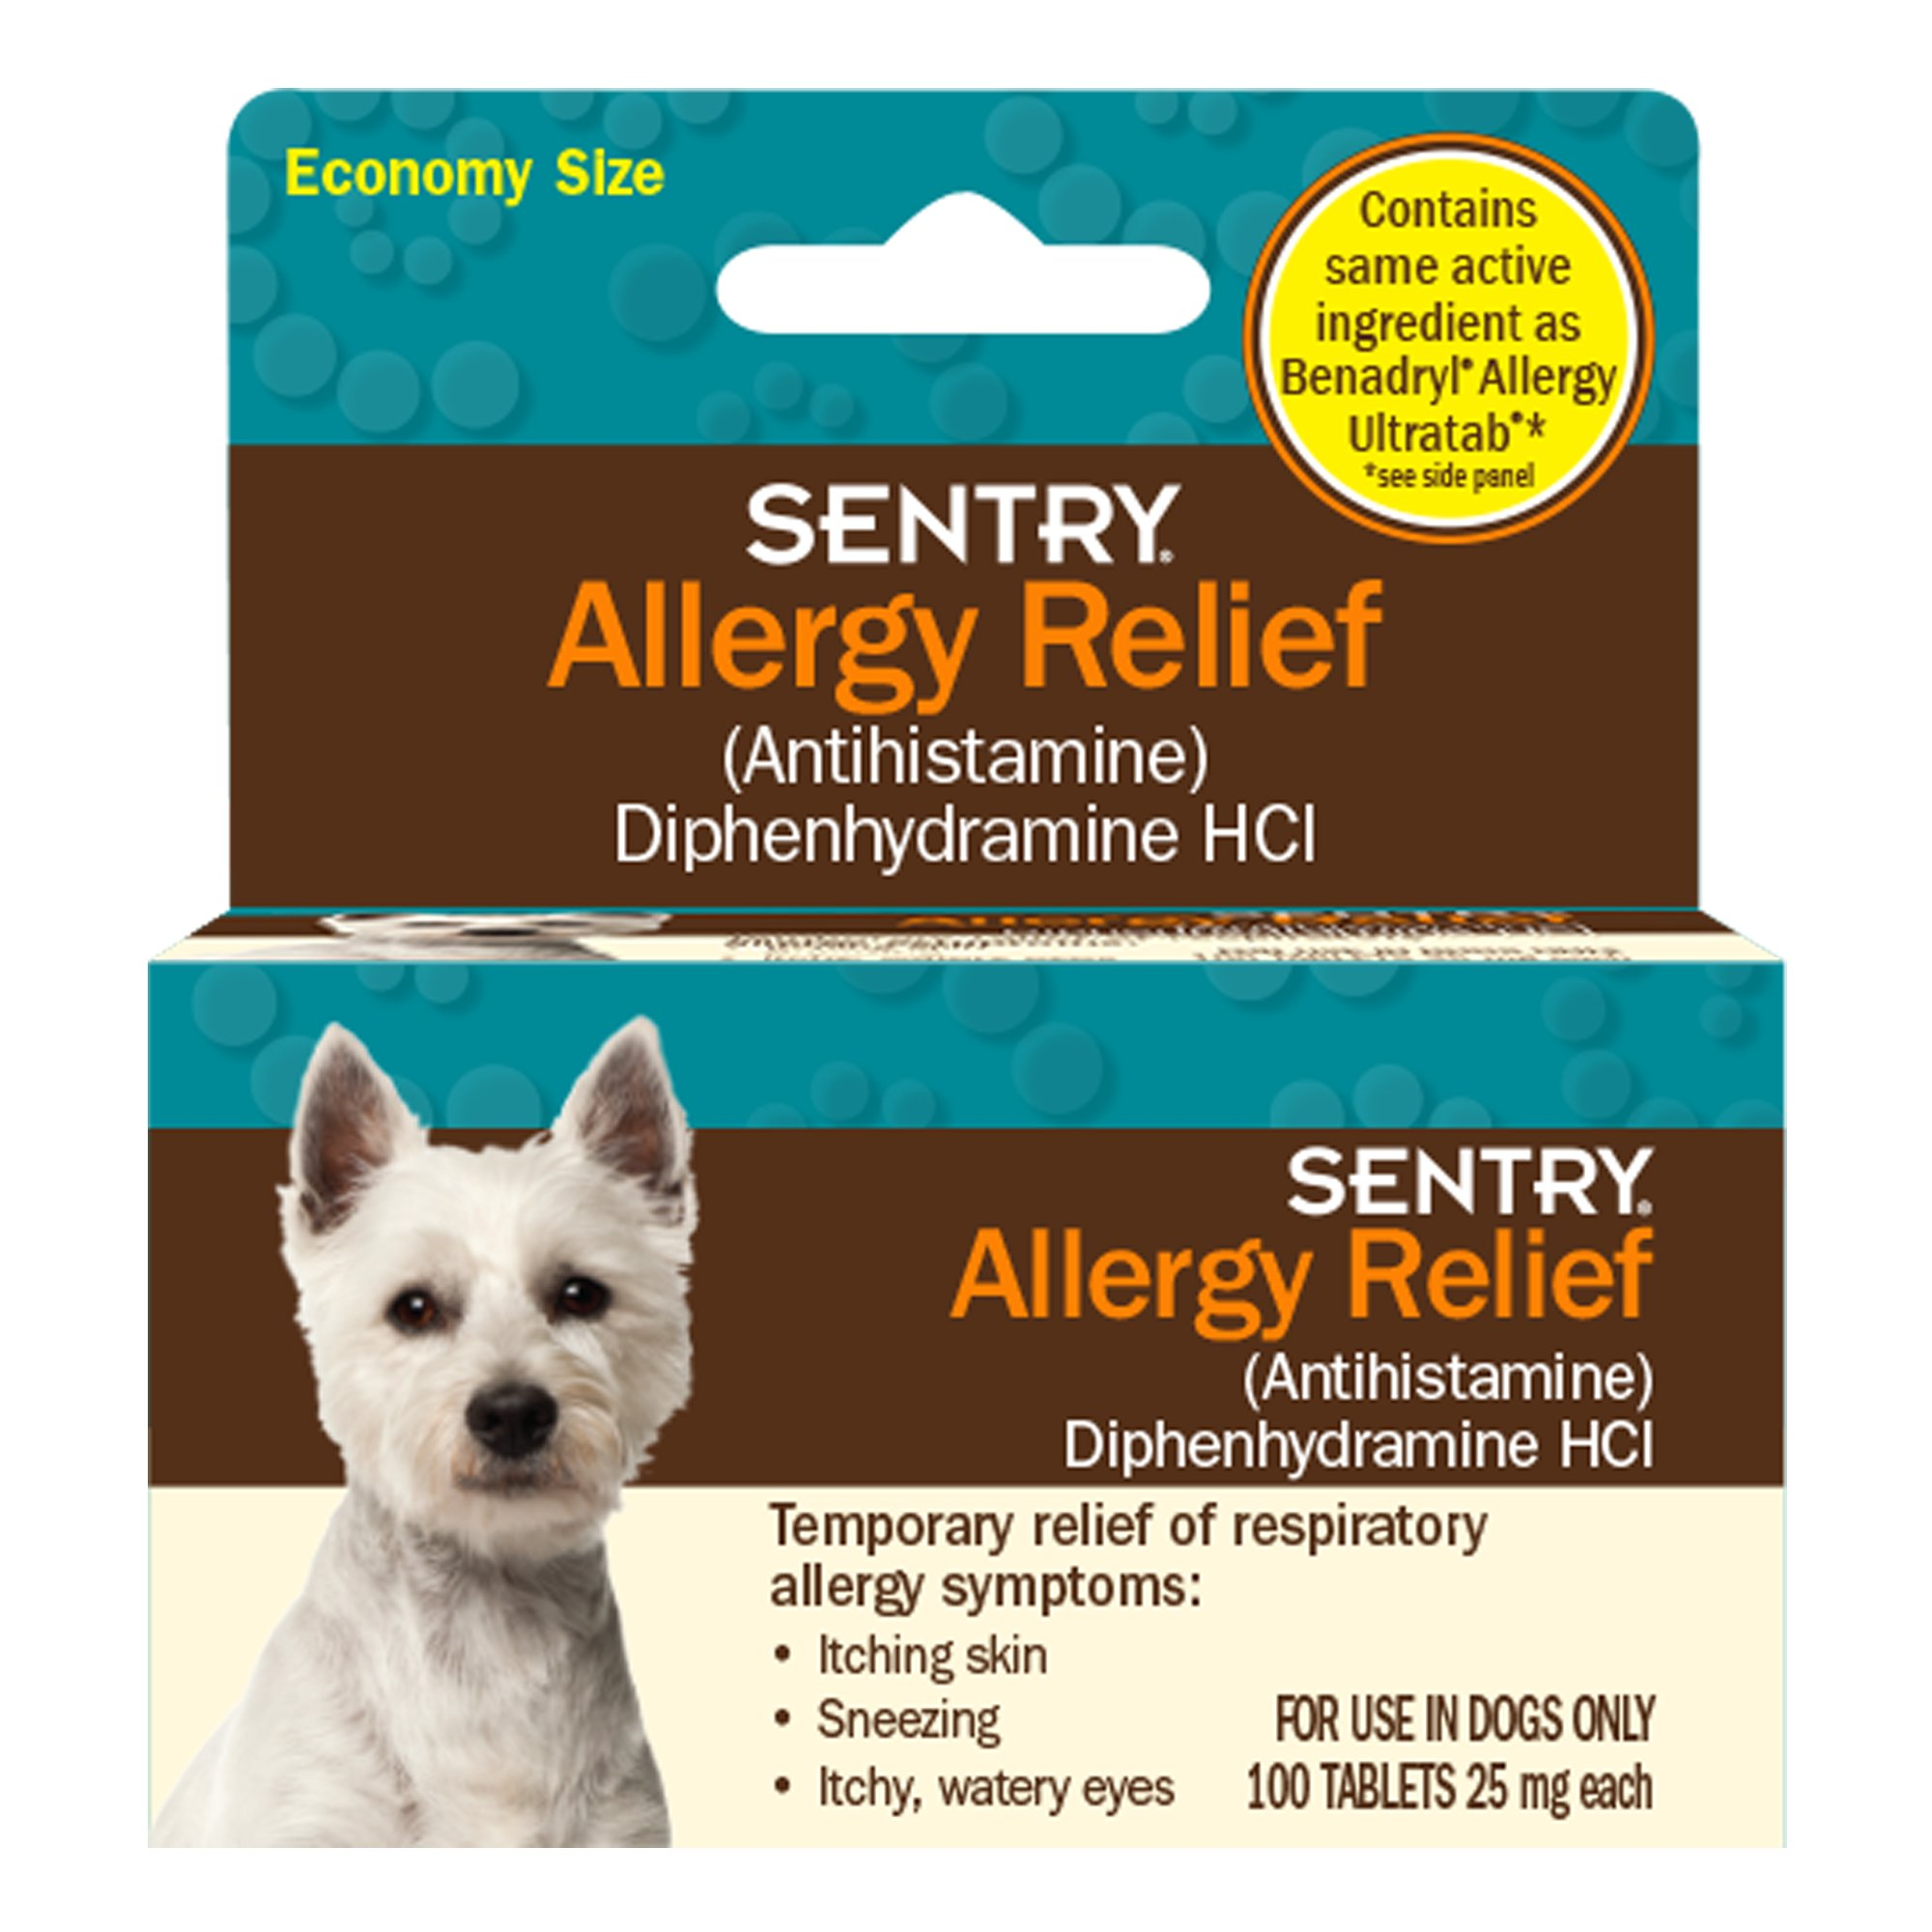 All Natural Dog Food For Allergies